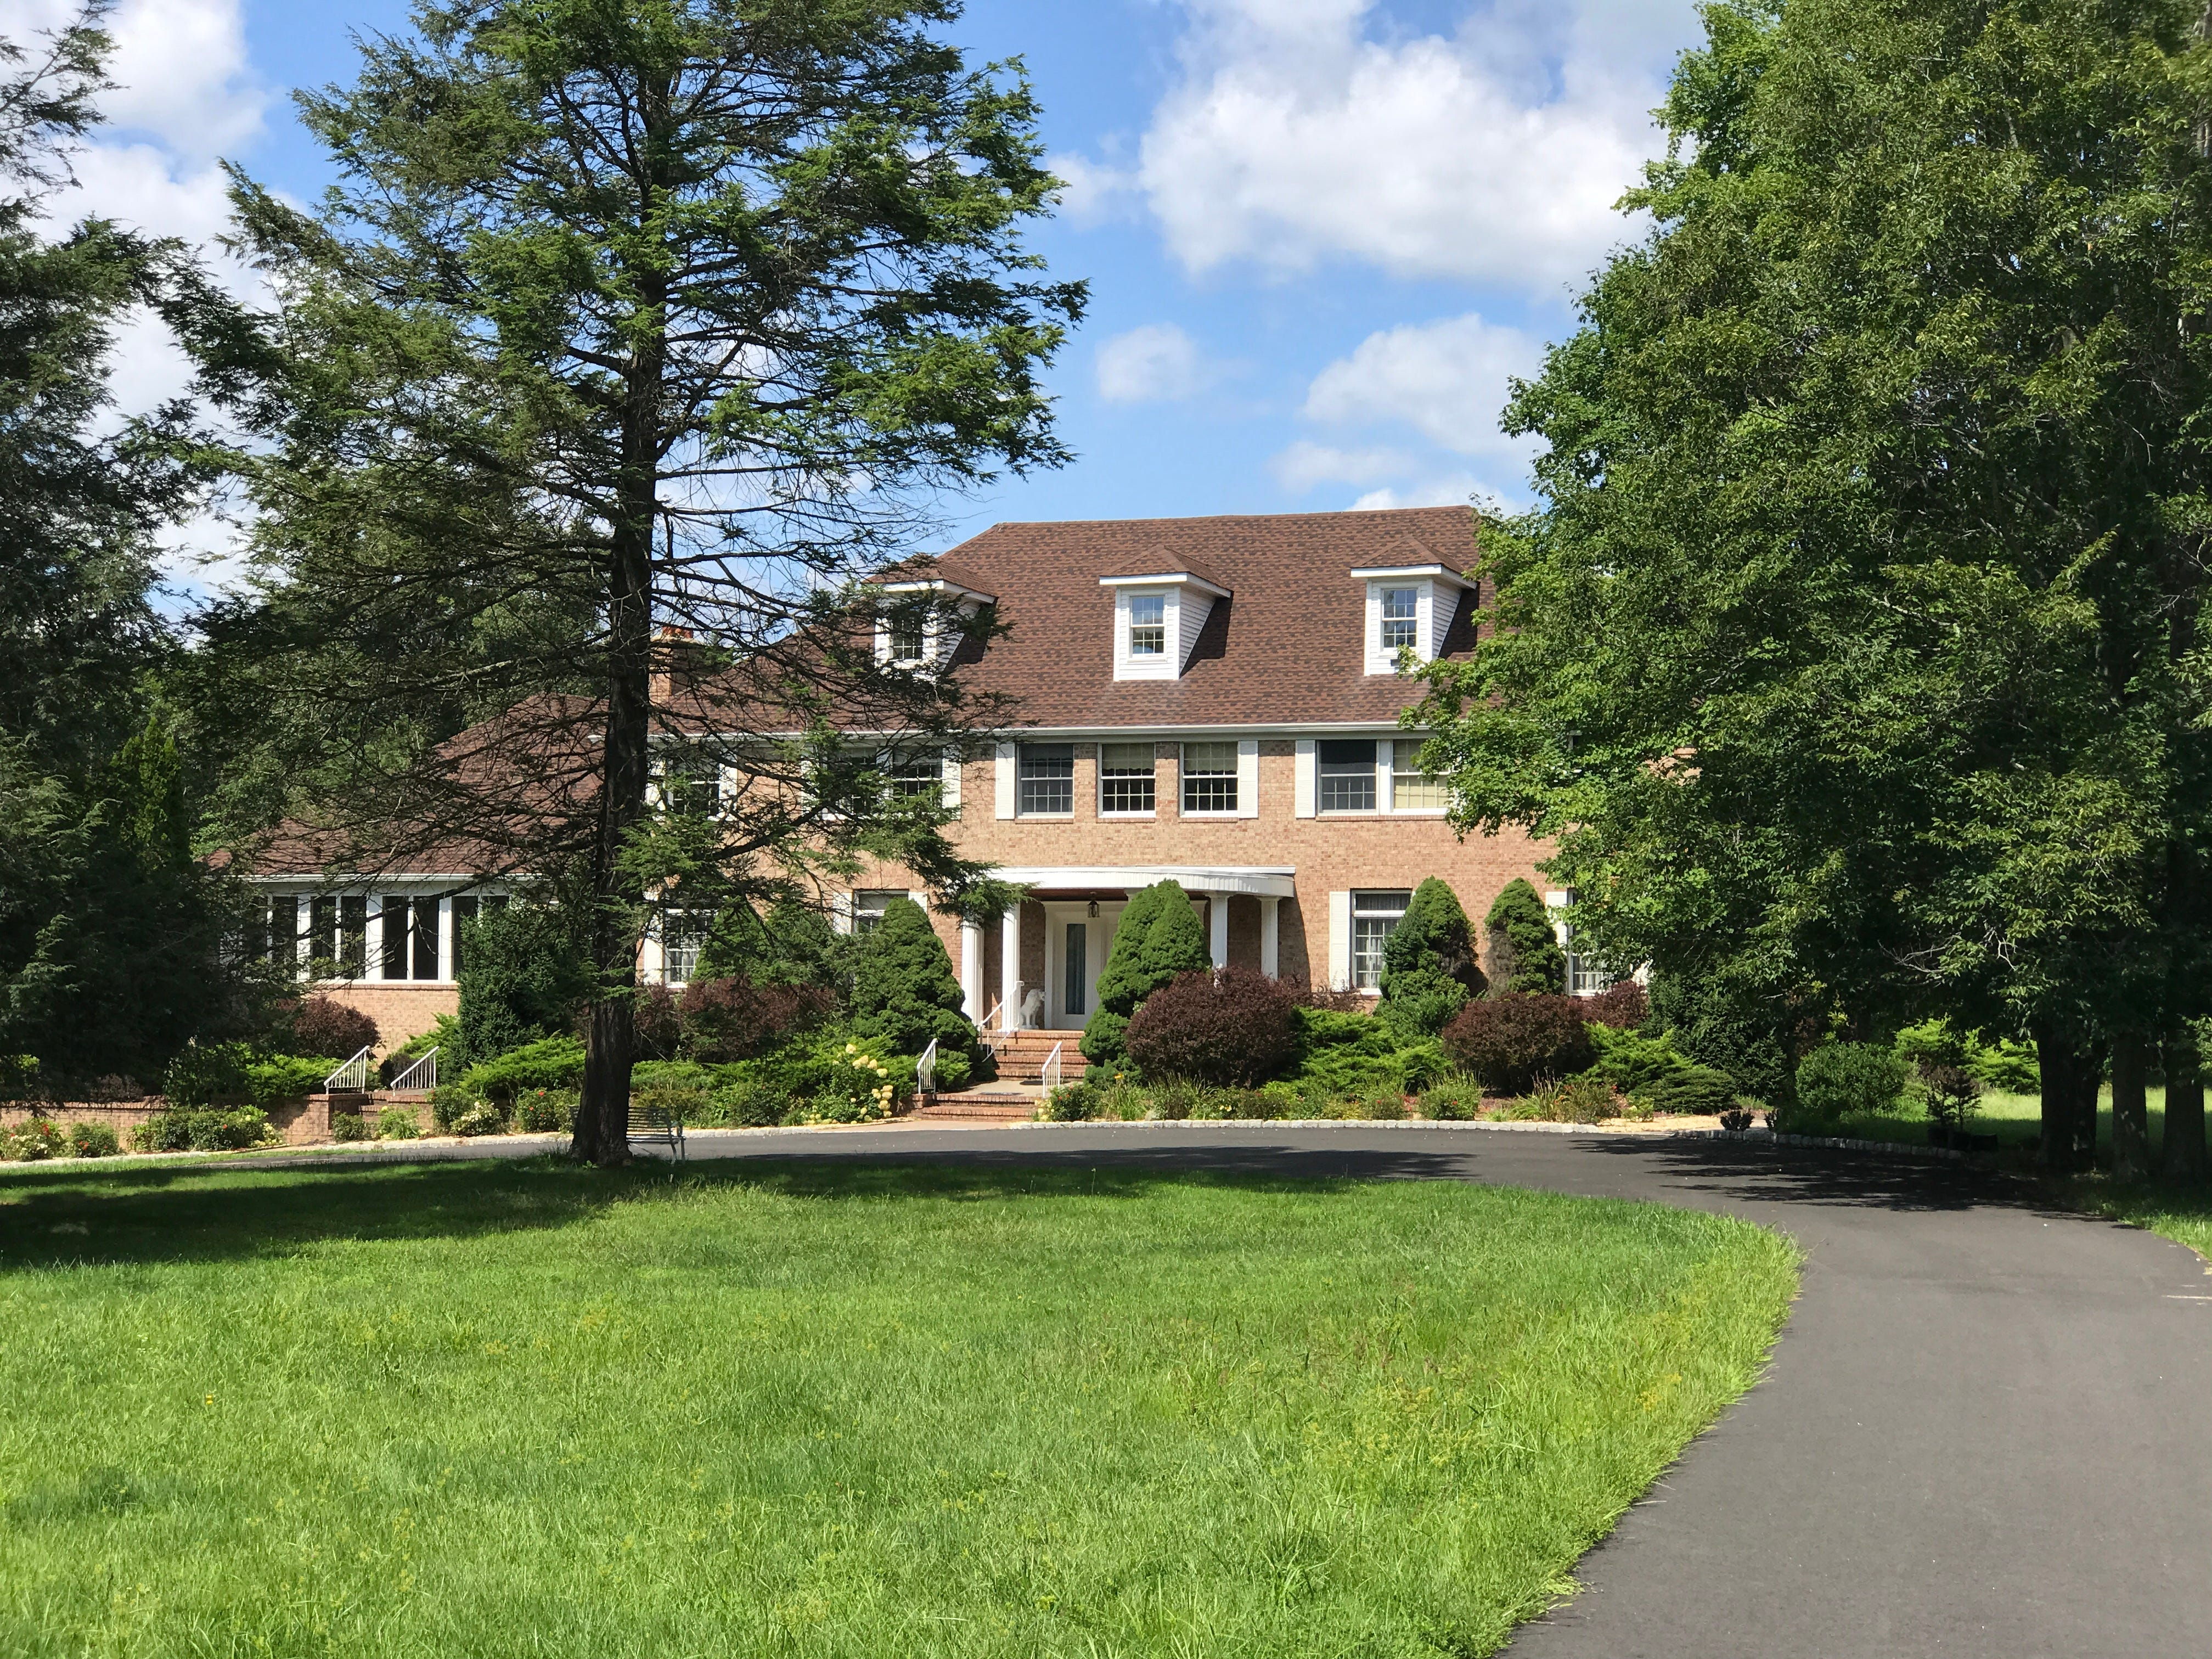 A look at a million dollar home for sale on 20 acres of secluded property in the woods in West Milford. The brick colonial at 828 East Shore Road was built in 1983 and features a grand ballroom and an indoor handball court. It has six bedrooms and five-and-a-half baths and is a five minute walk from Greenwood Lake.